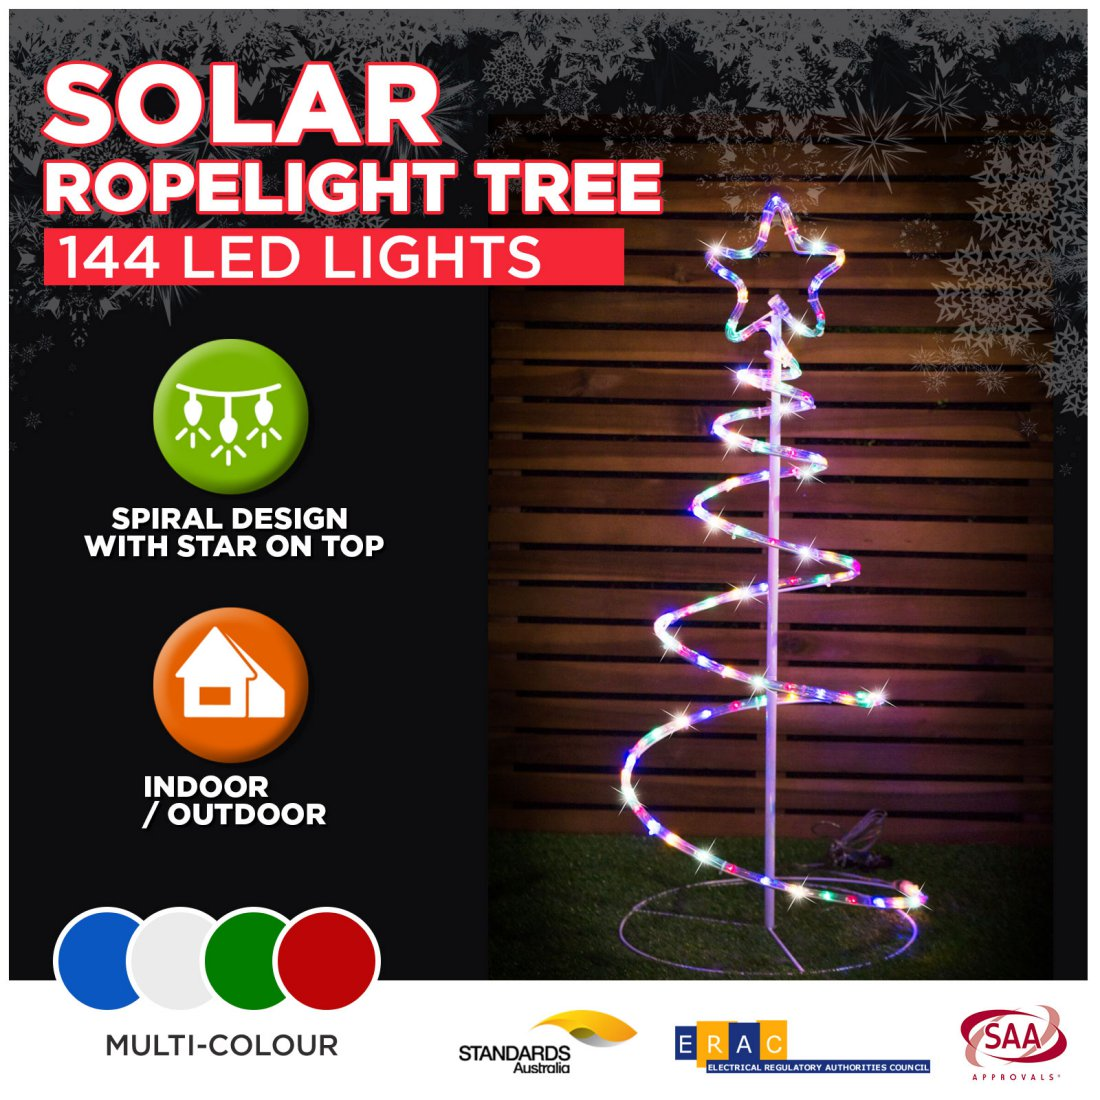 Solar Rope Light Spiral Tree LED Multi Colour Outdoor Christmas Light Decor 90cm